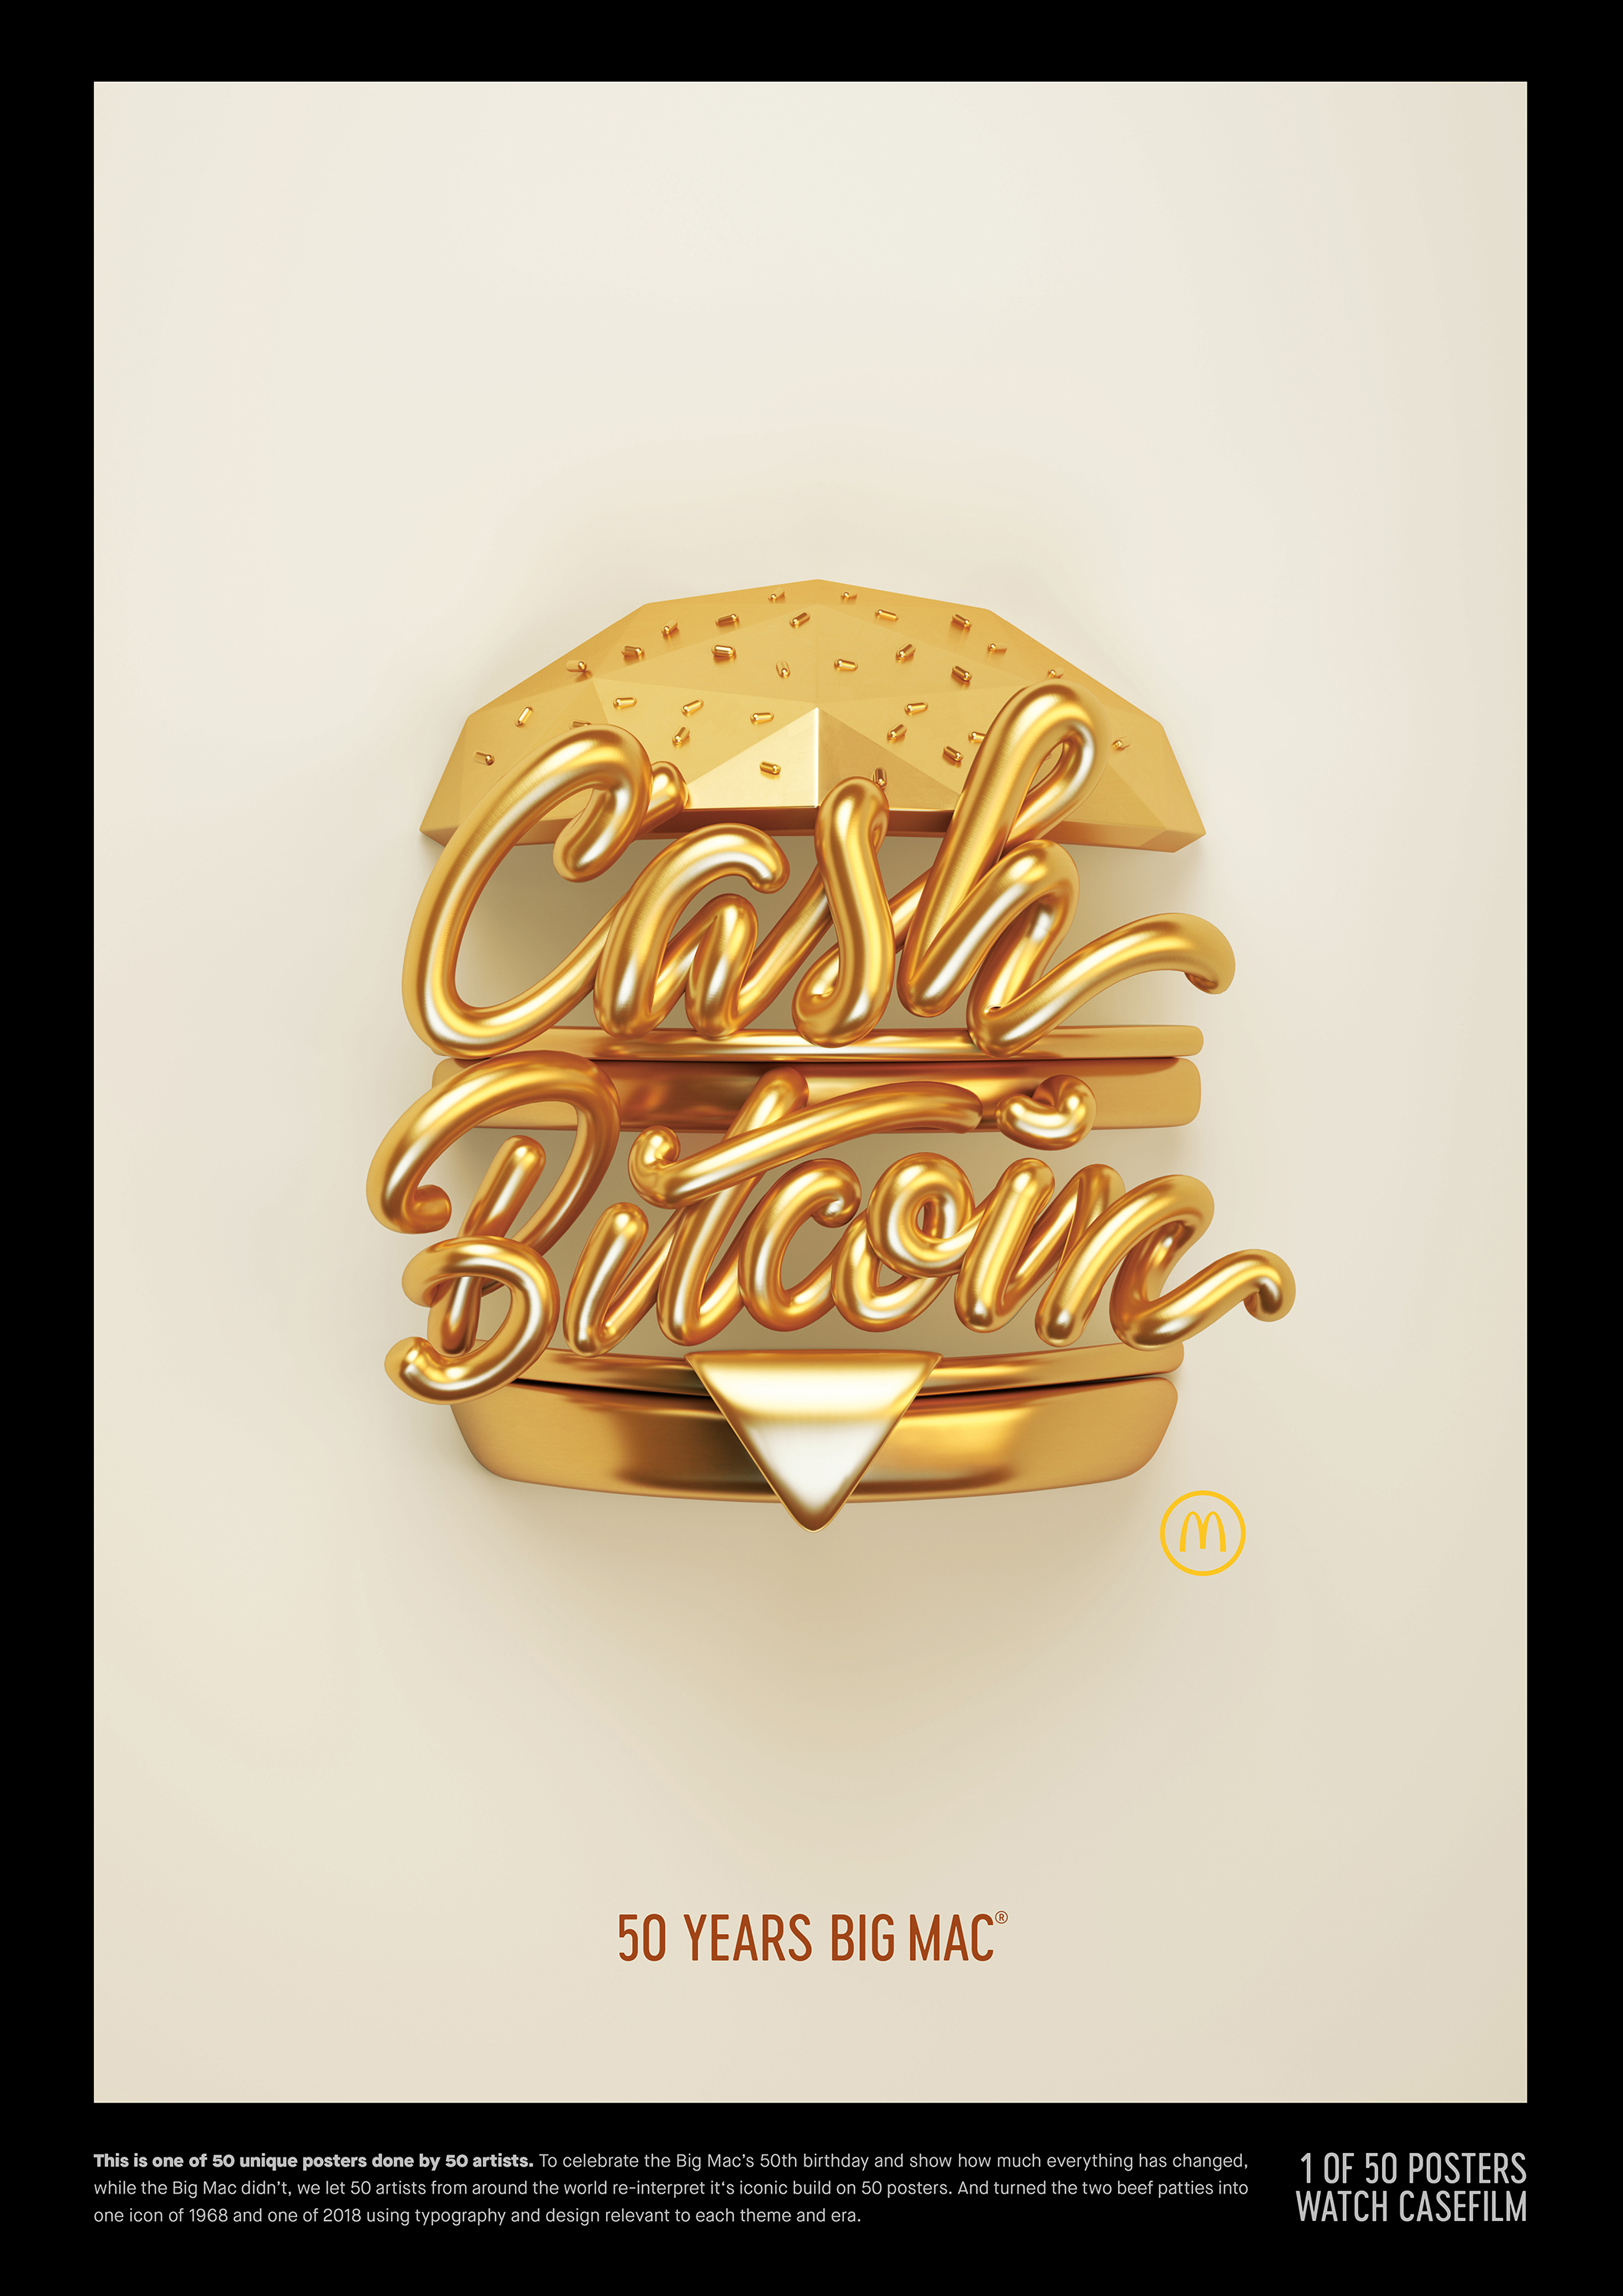 Image for Cash/Bitcoin